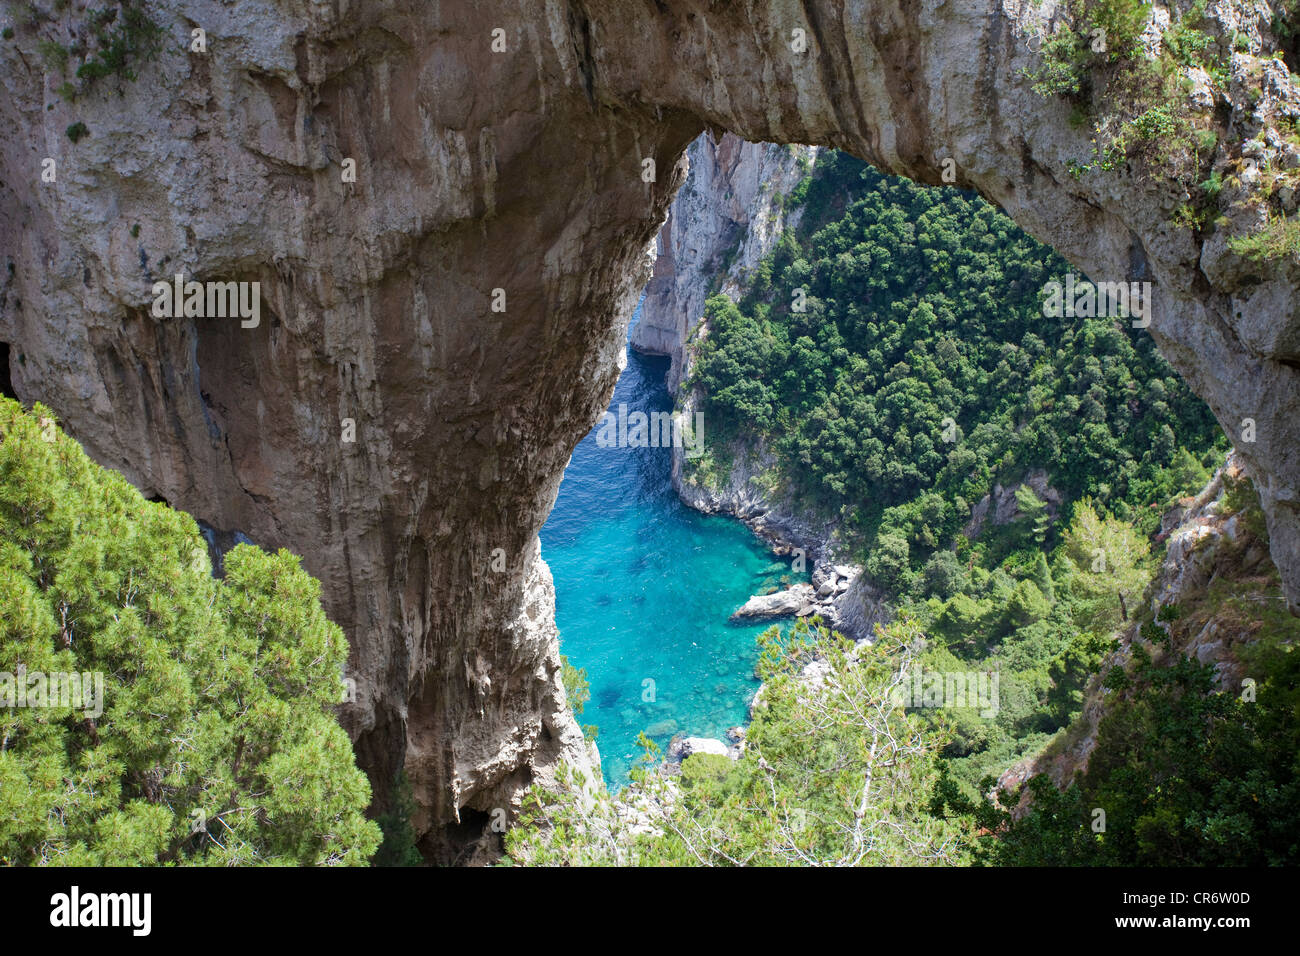 Natural rock arch, Capri, Gulf of Naples, Campania region, Italy, Europe - Stock Image